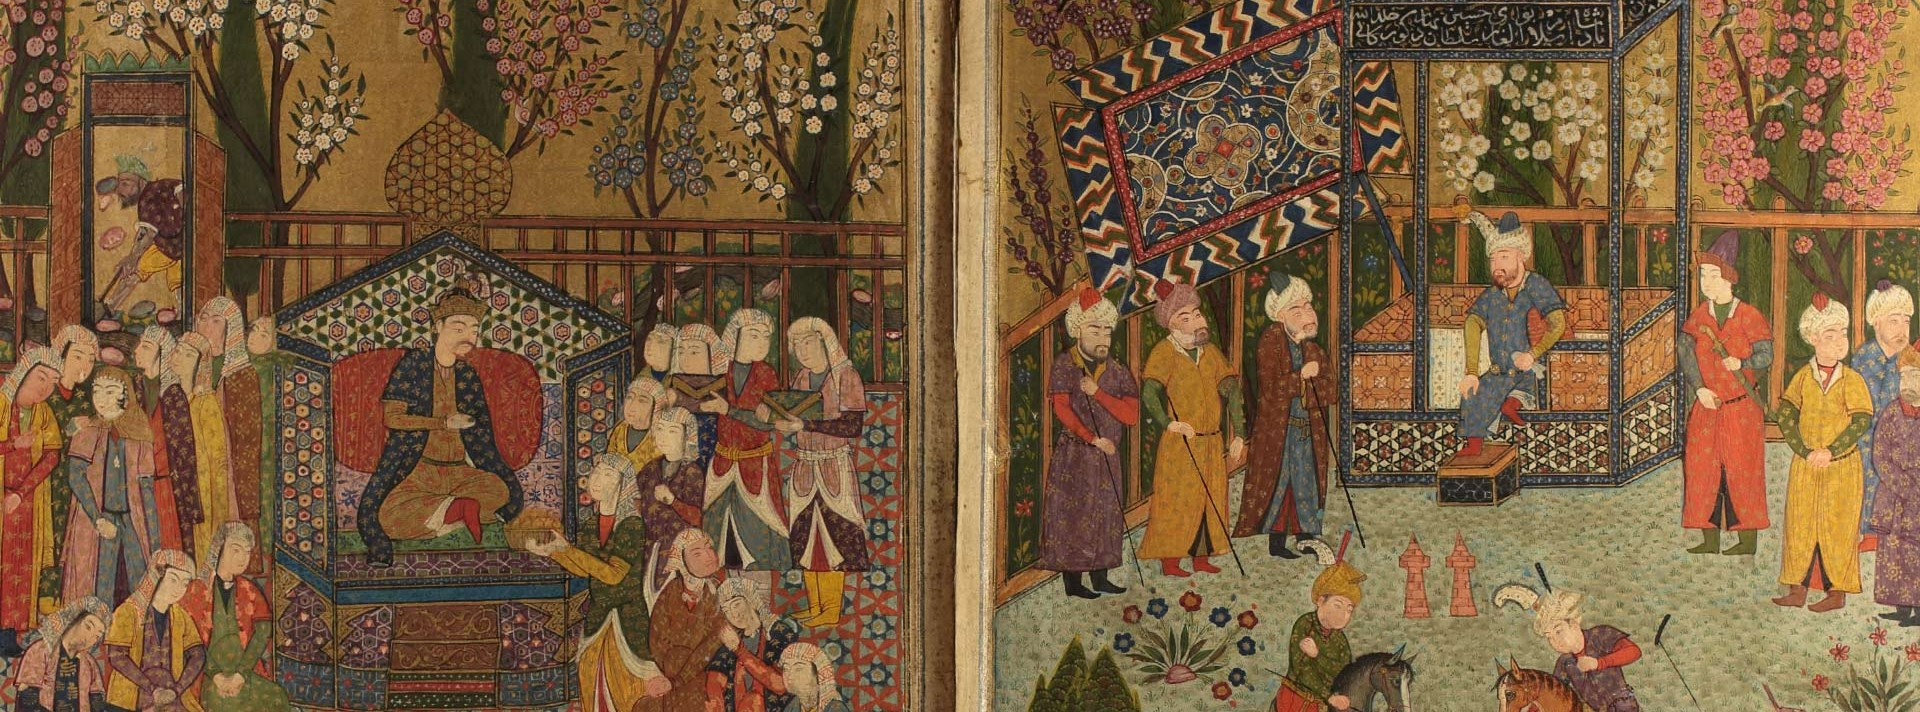 National Library of Israel and Arcadia Fund Announce Major Initiative to Open Digital Access to Over 2,500 Rare Islamic Texts